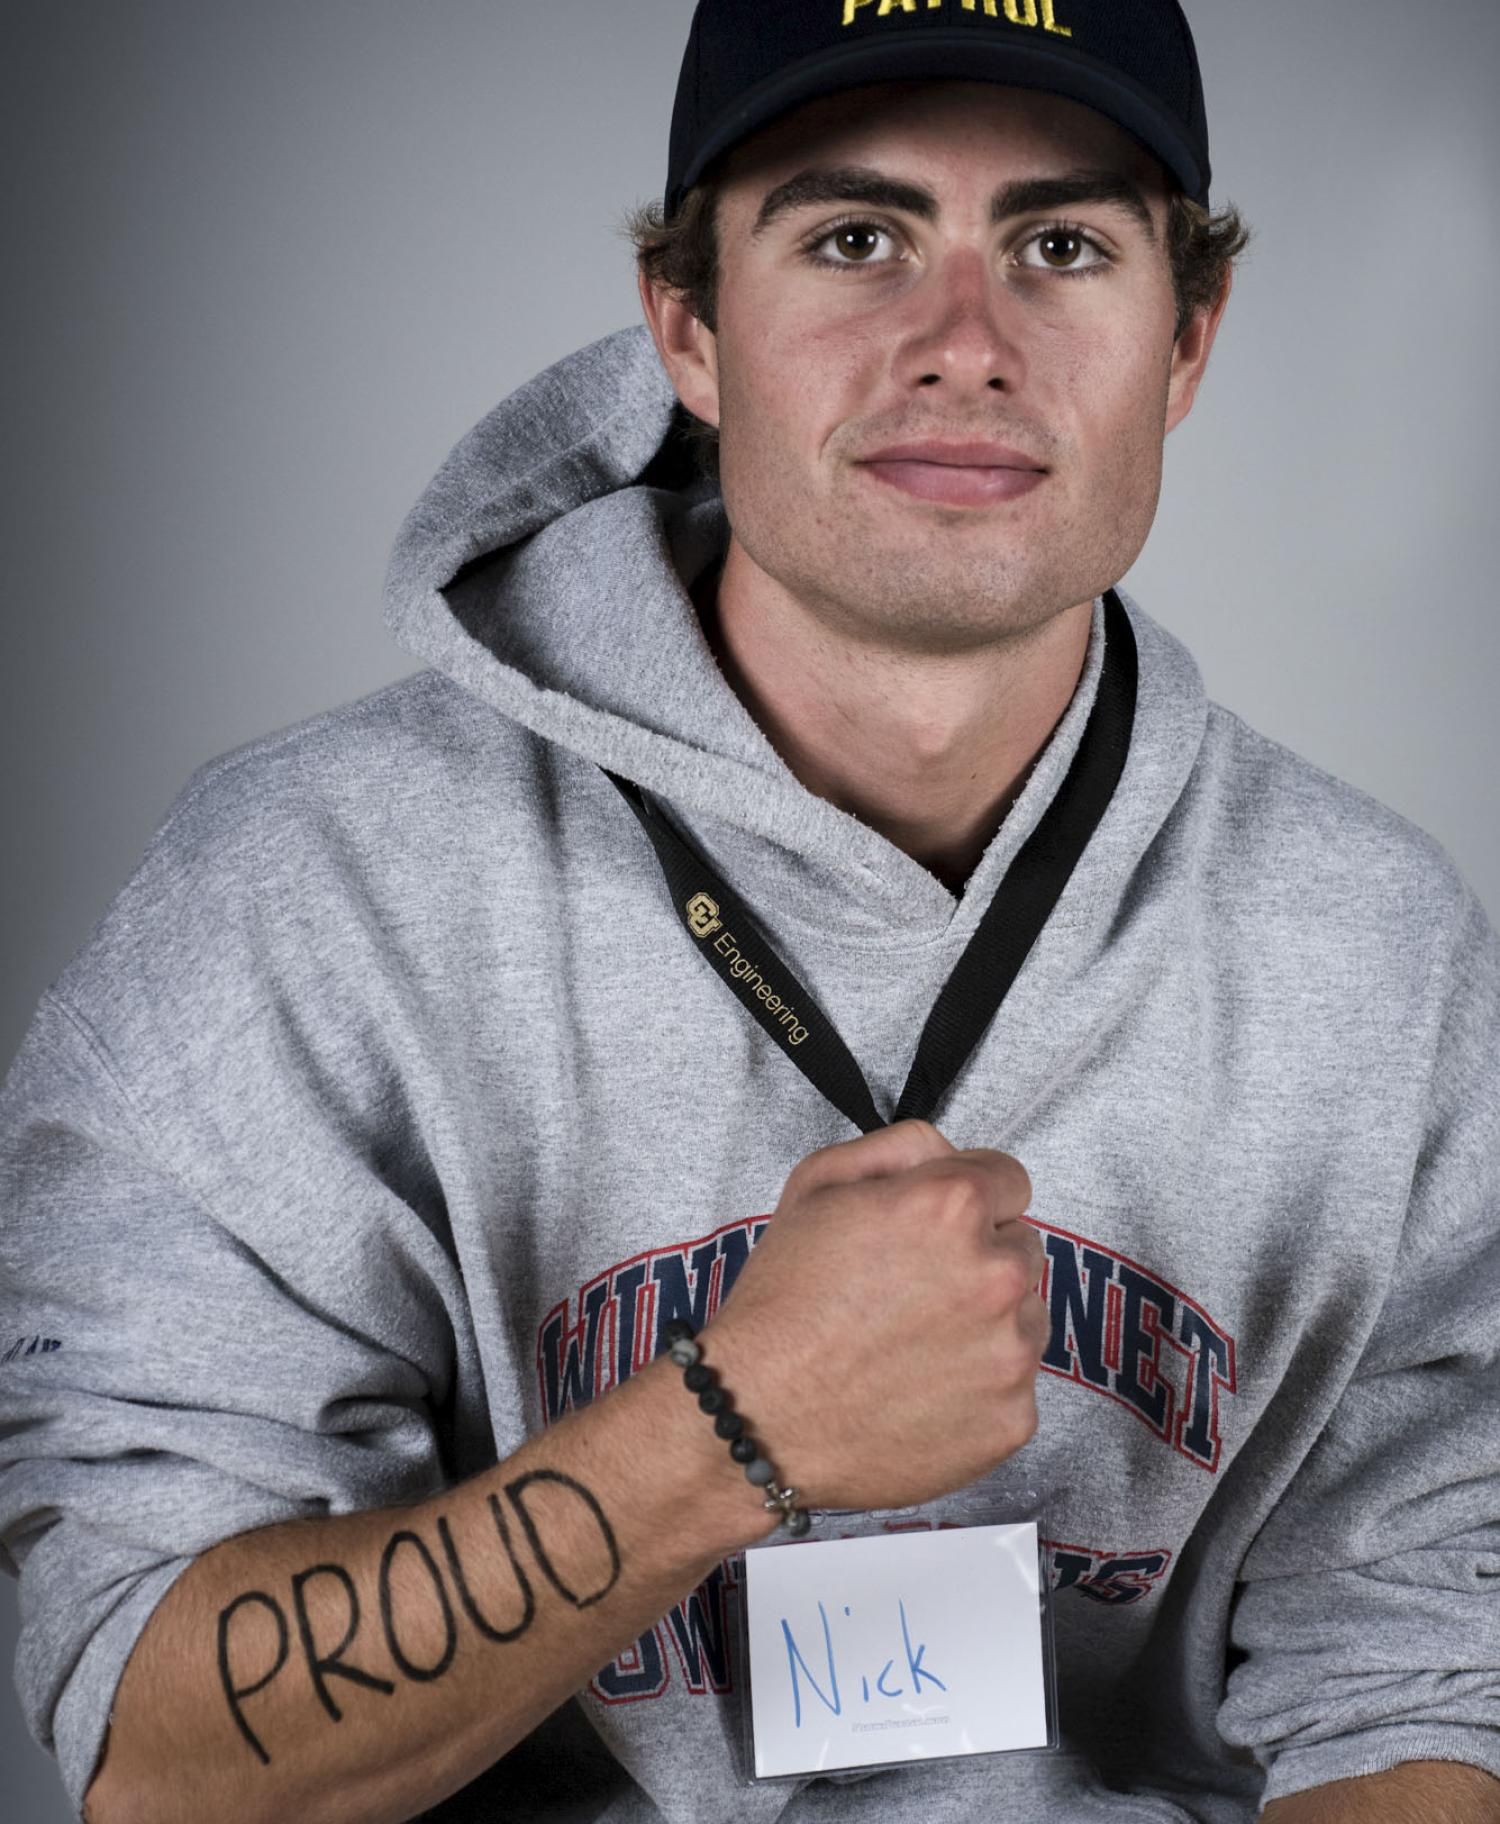 Male student with writing on arm